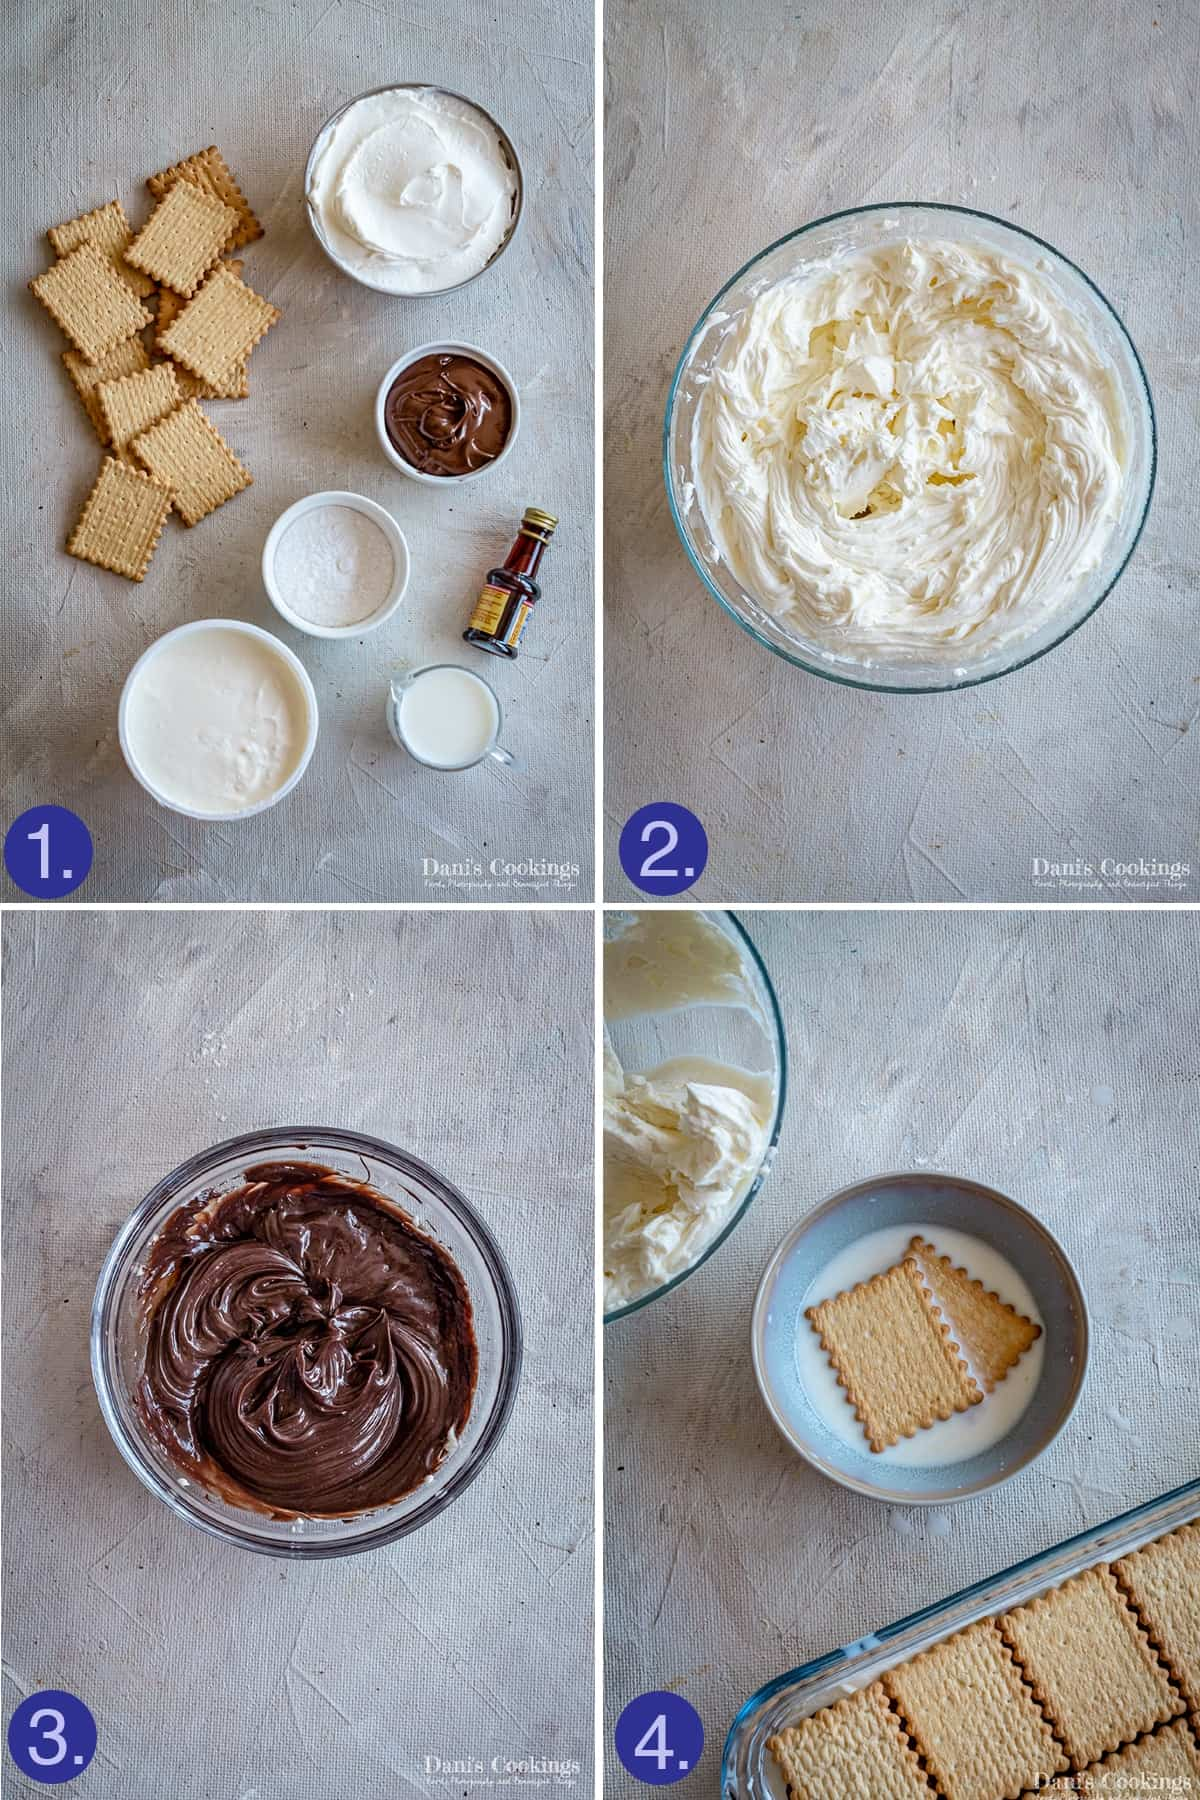 steps and ingredients to make the frosting and dip the biscuits